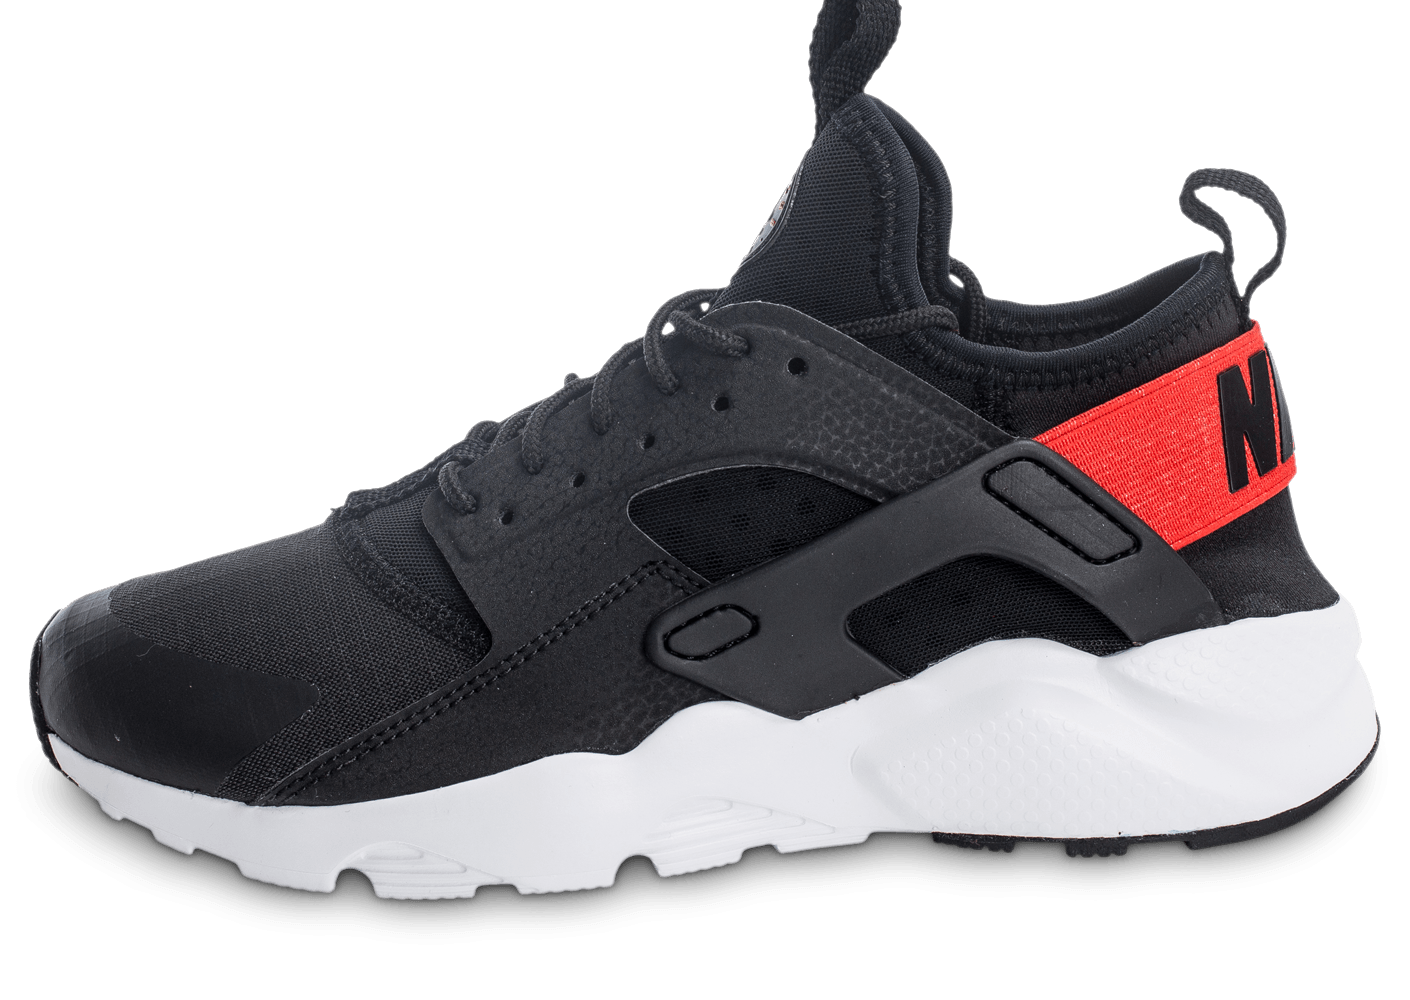 newest 95bcc 7e5e7 Nike Air Huarache Run Ultra Junior noir et rouge - Chaussures Enfant -  Chausport